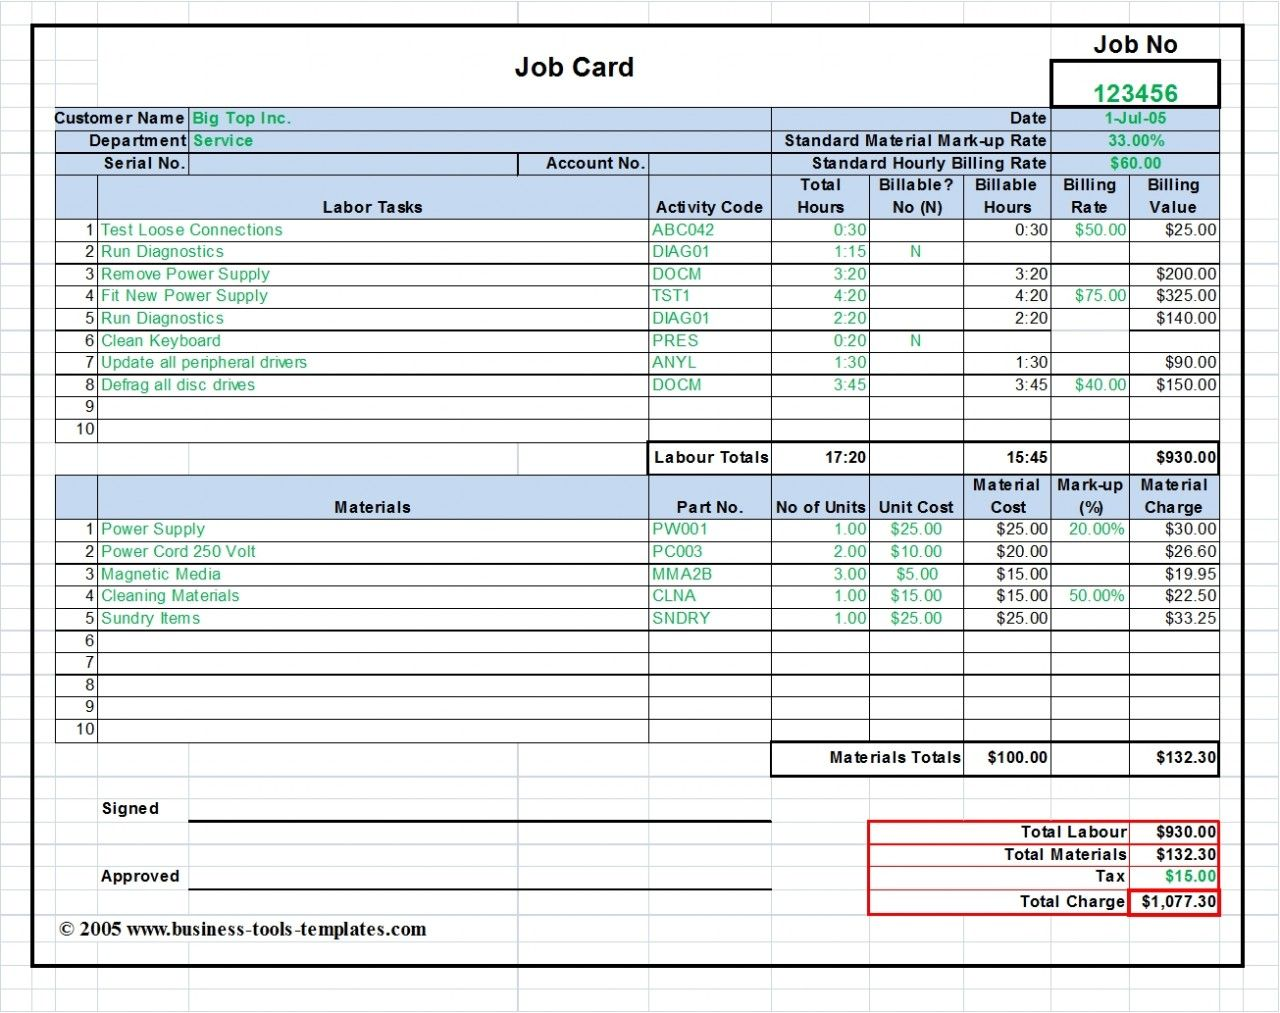 Latest Version Of The Cost Benefit Analysis Template Includes A Mortgage  Sometimes You Need To Invest In Project Just  Excel Job Sheet Template